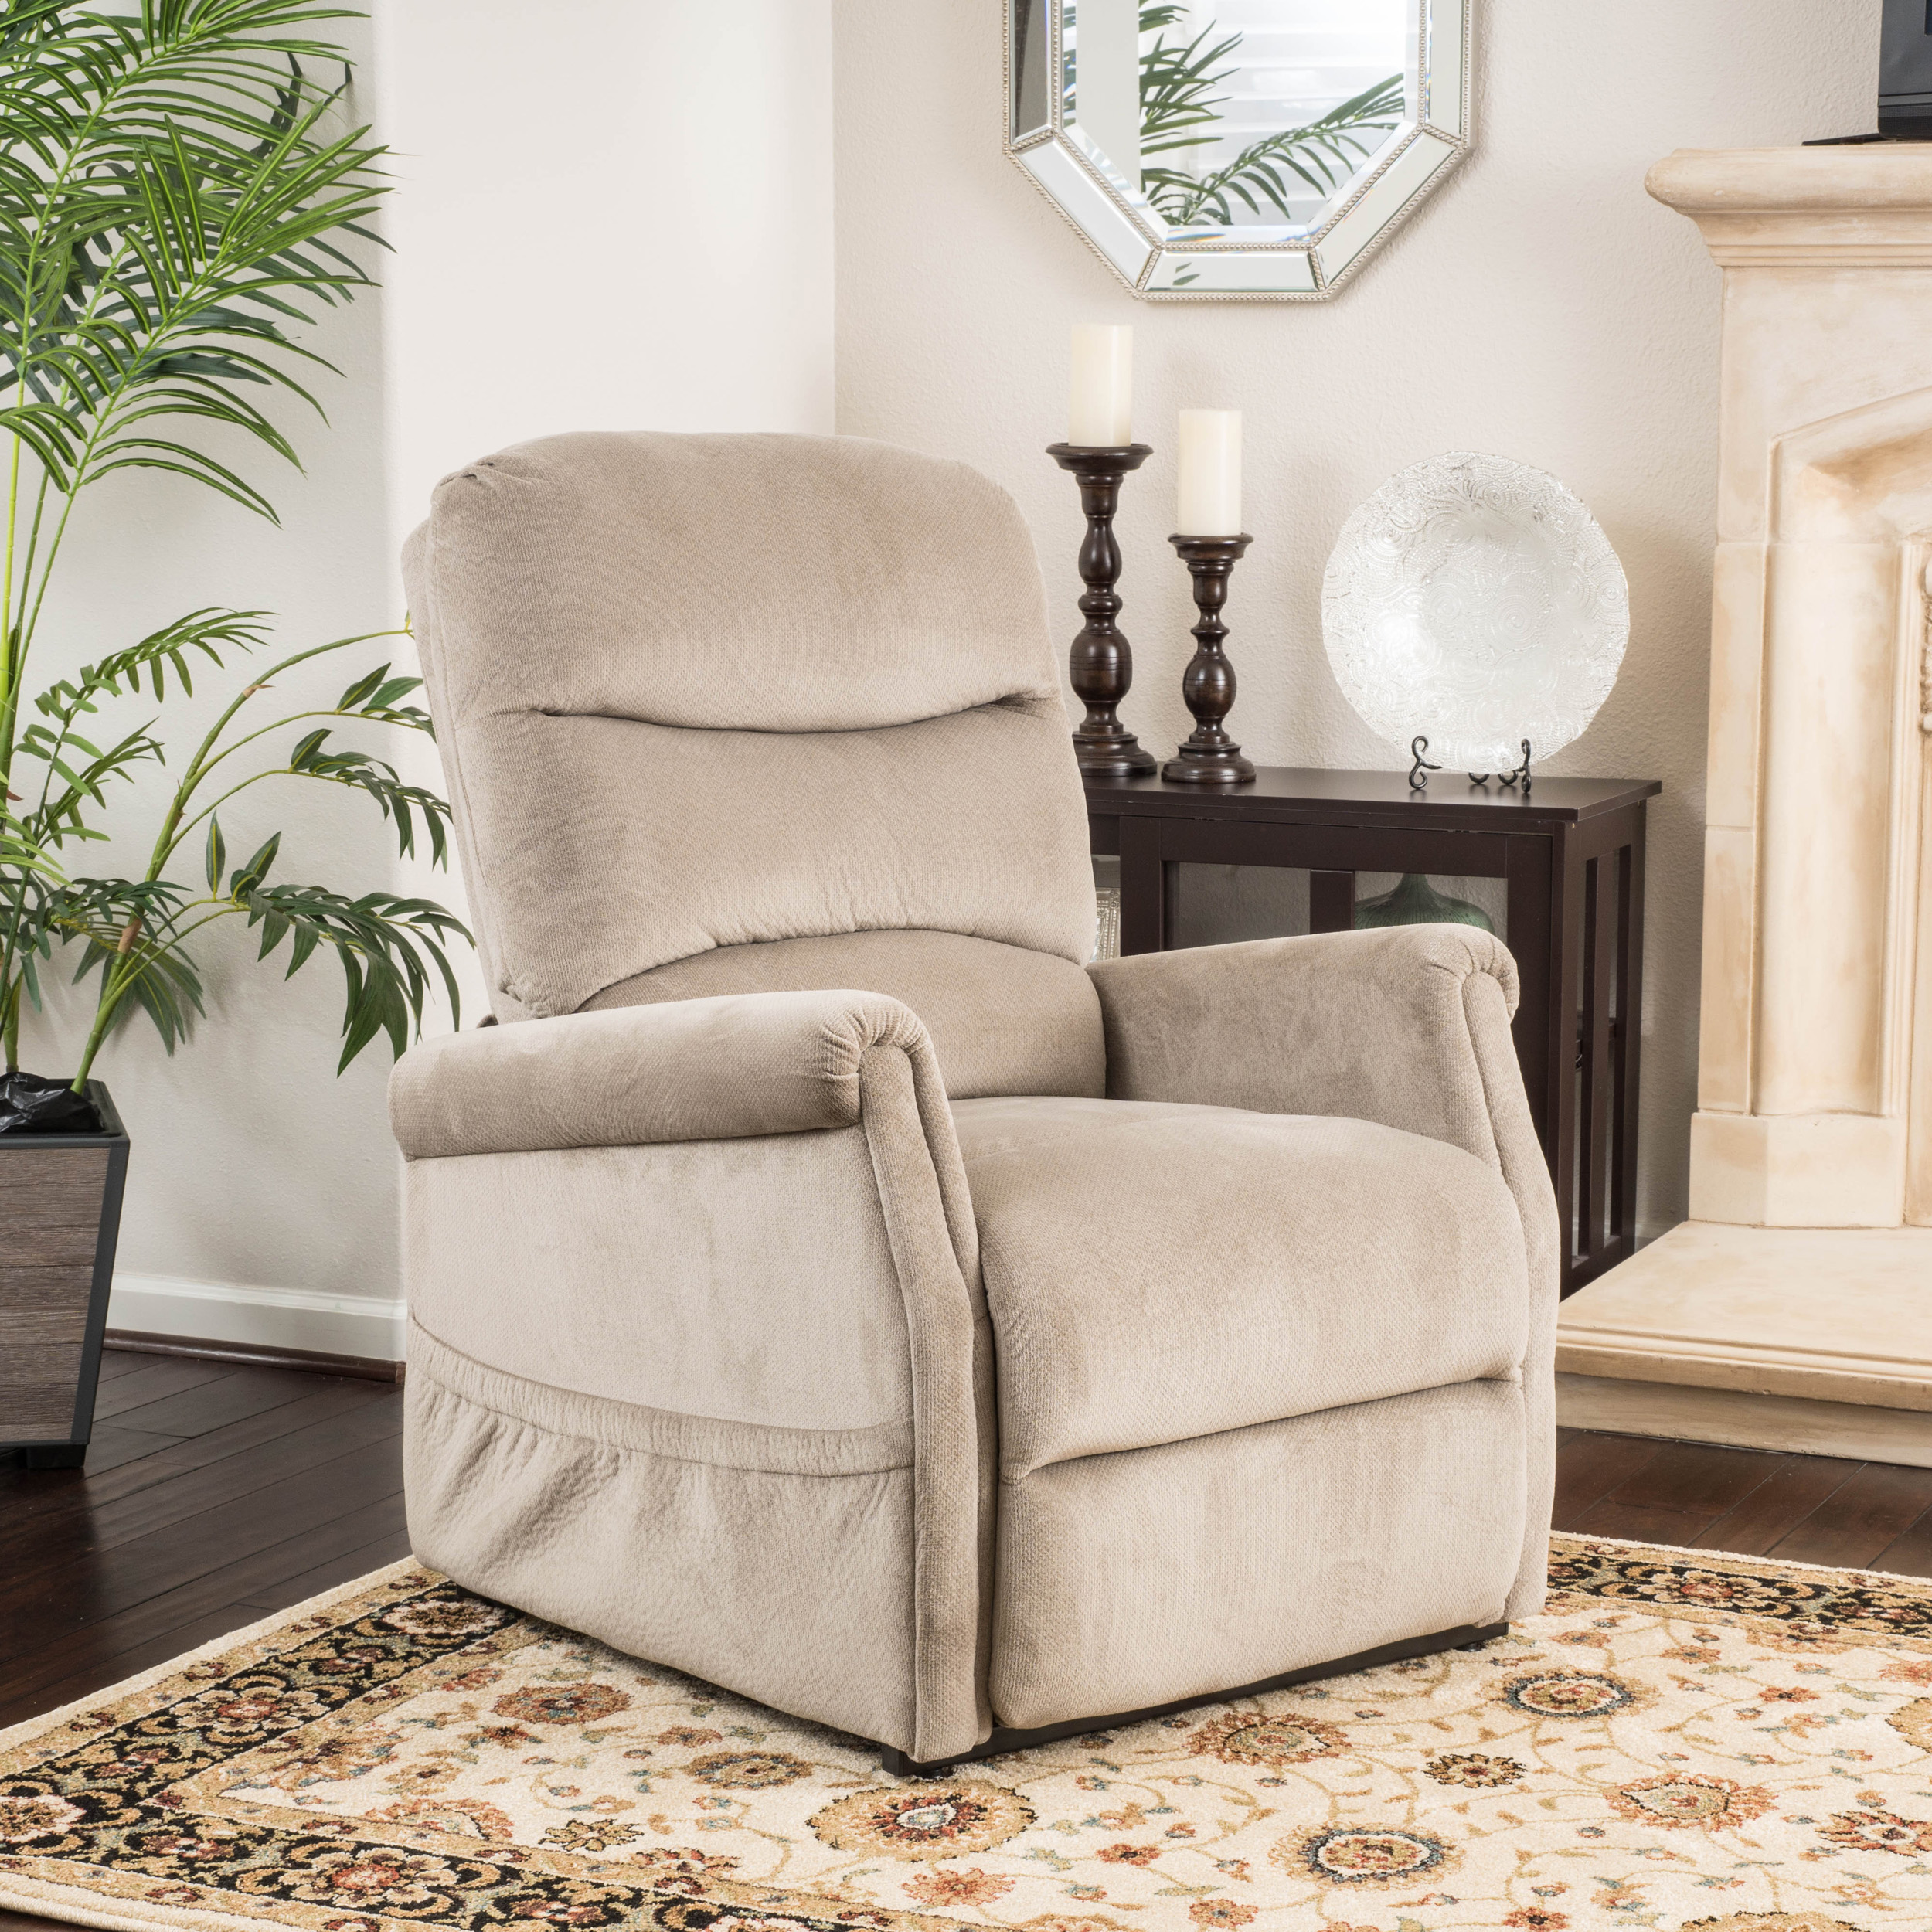 Noble House Fabric Lift Up Chair,Latte